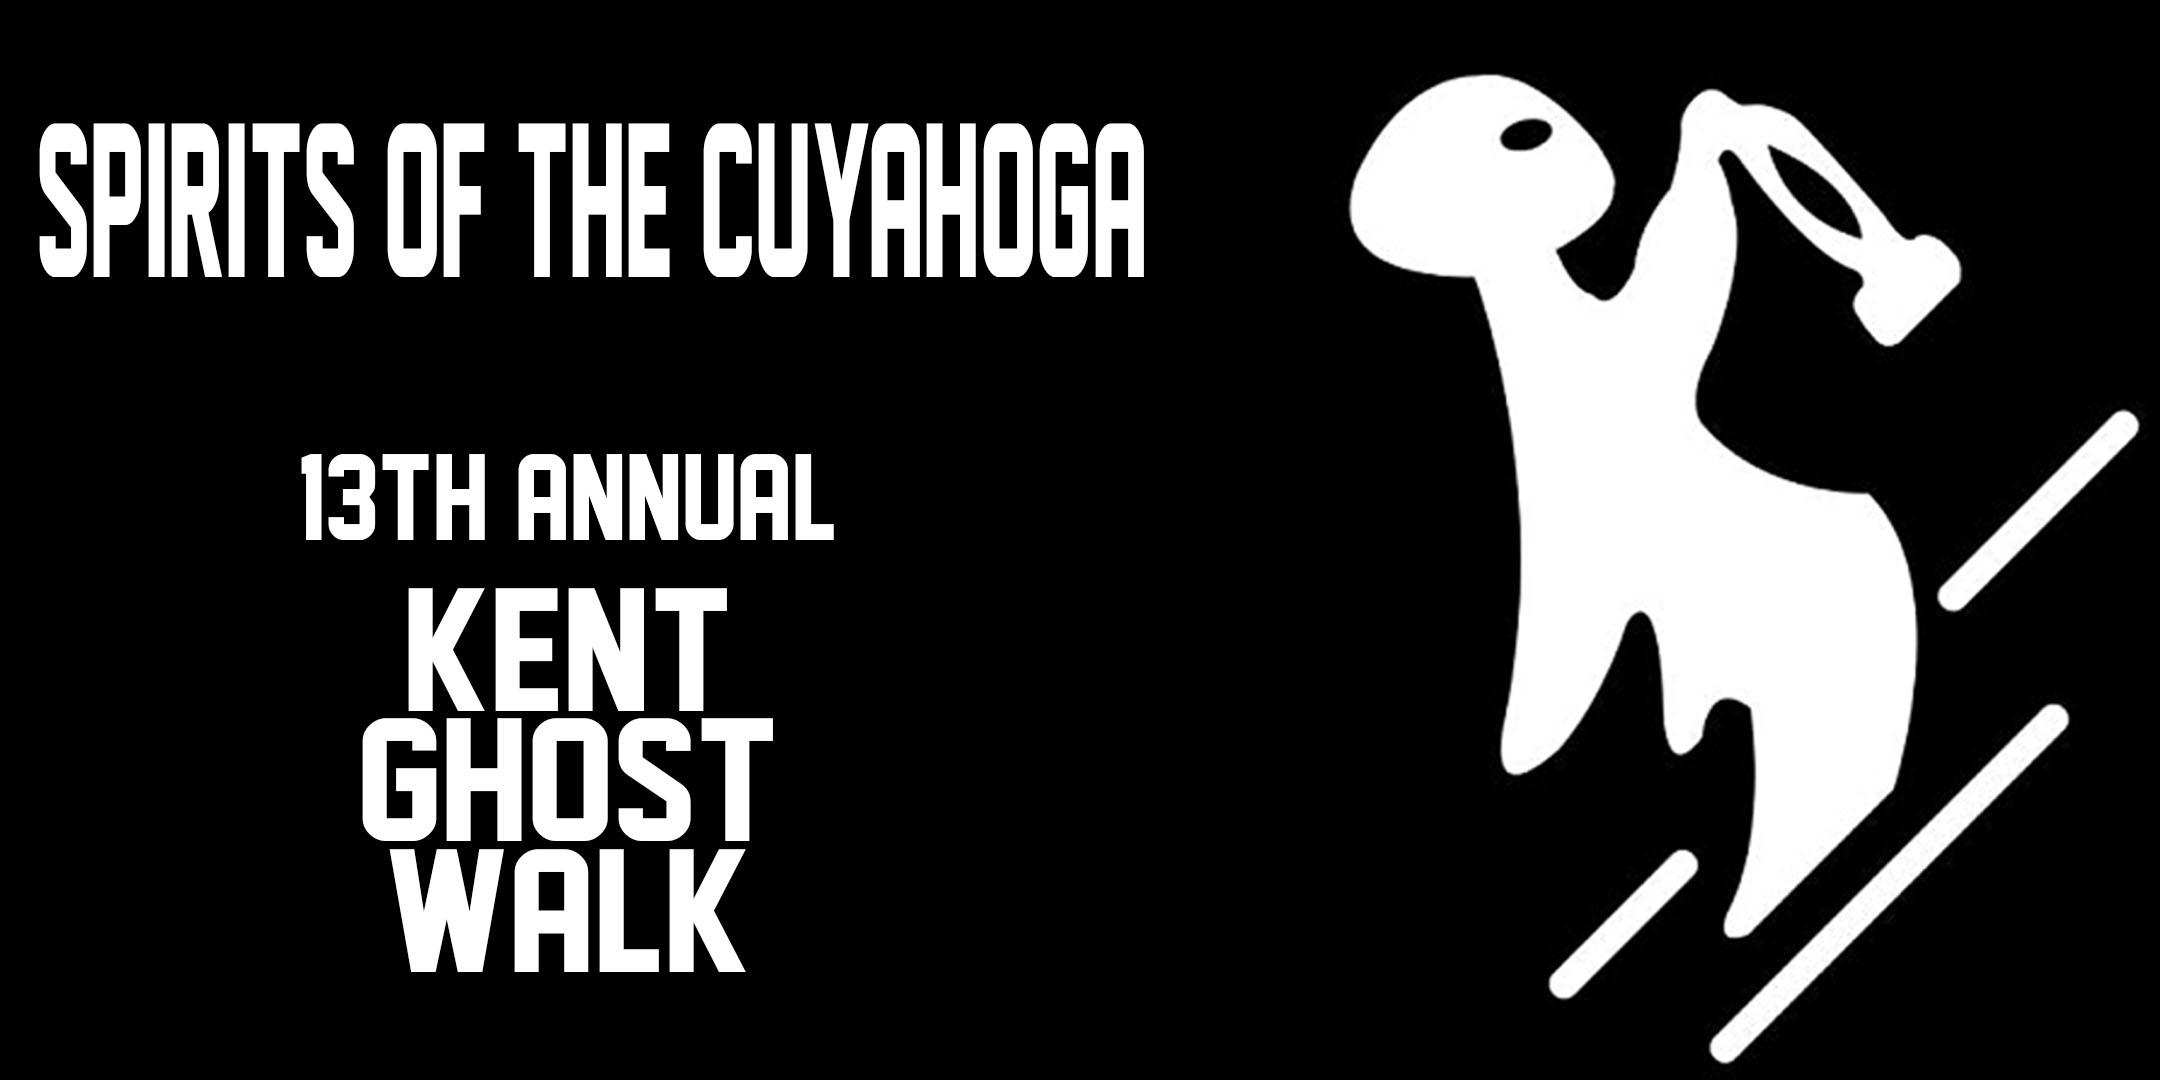 Spirits of the Cuyahoga  - 13th Annual Kent Ghost Walk